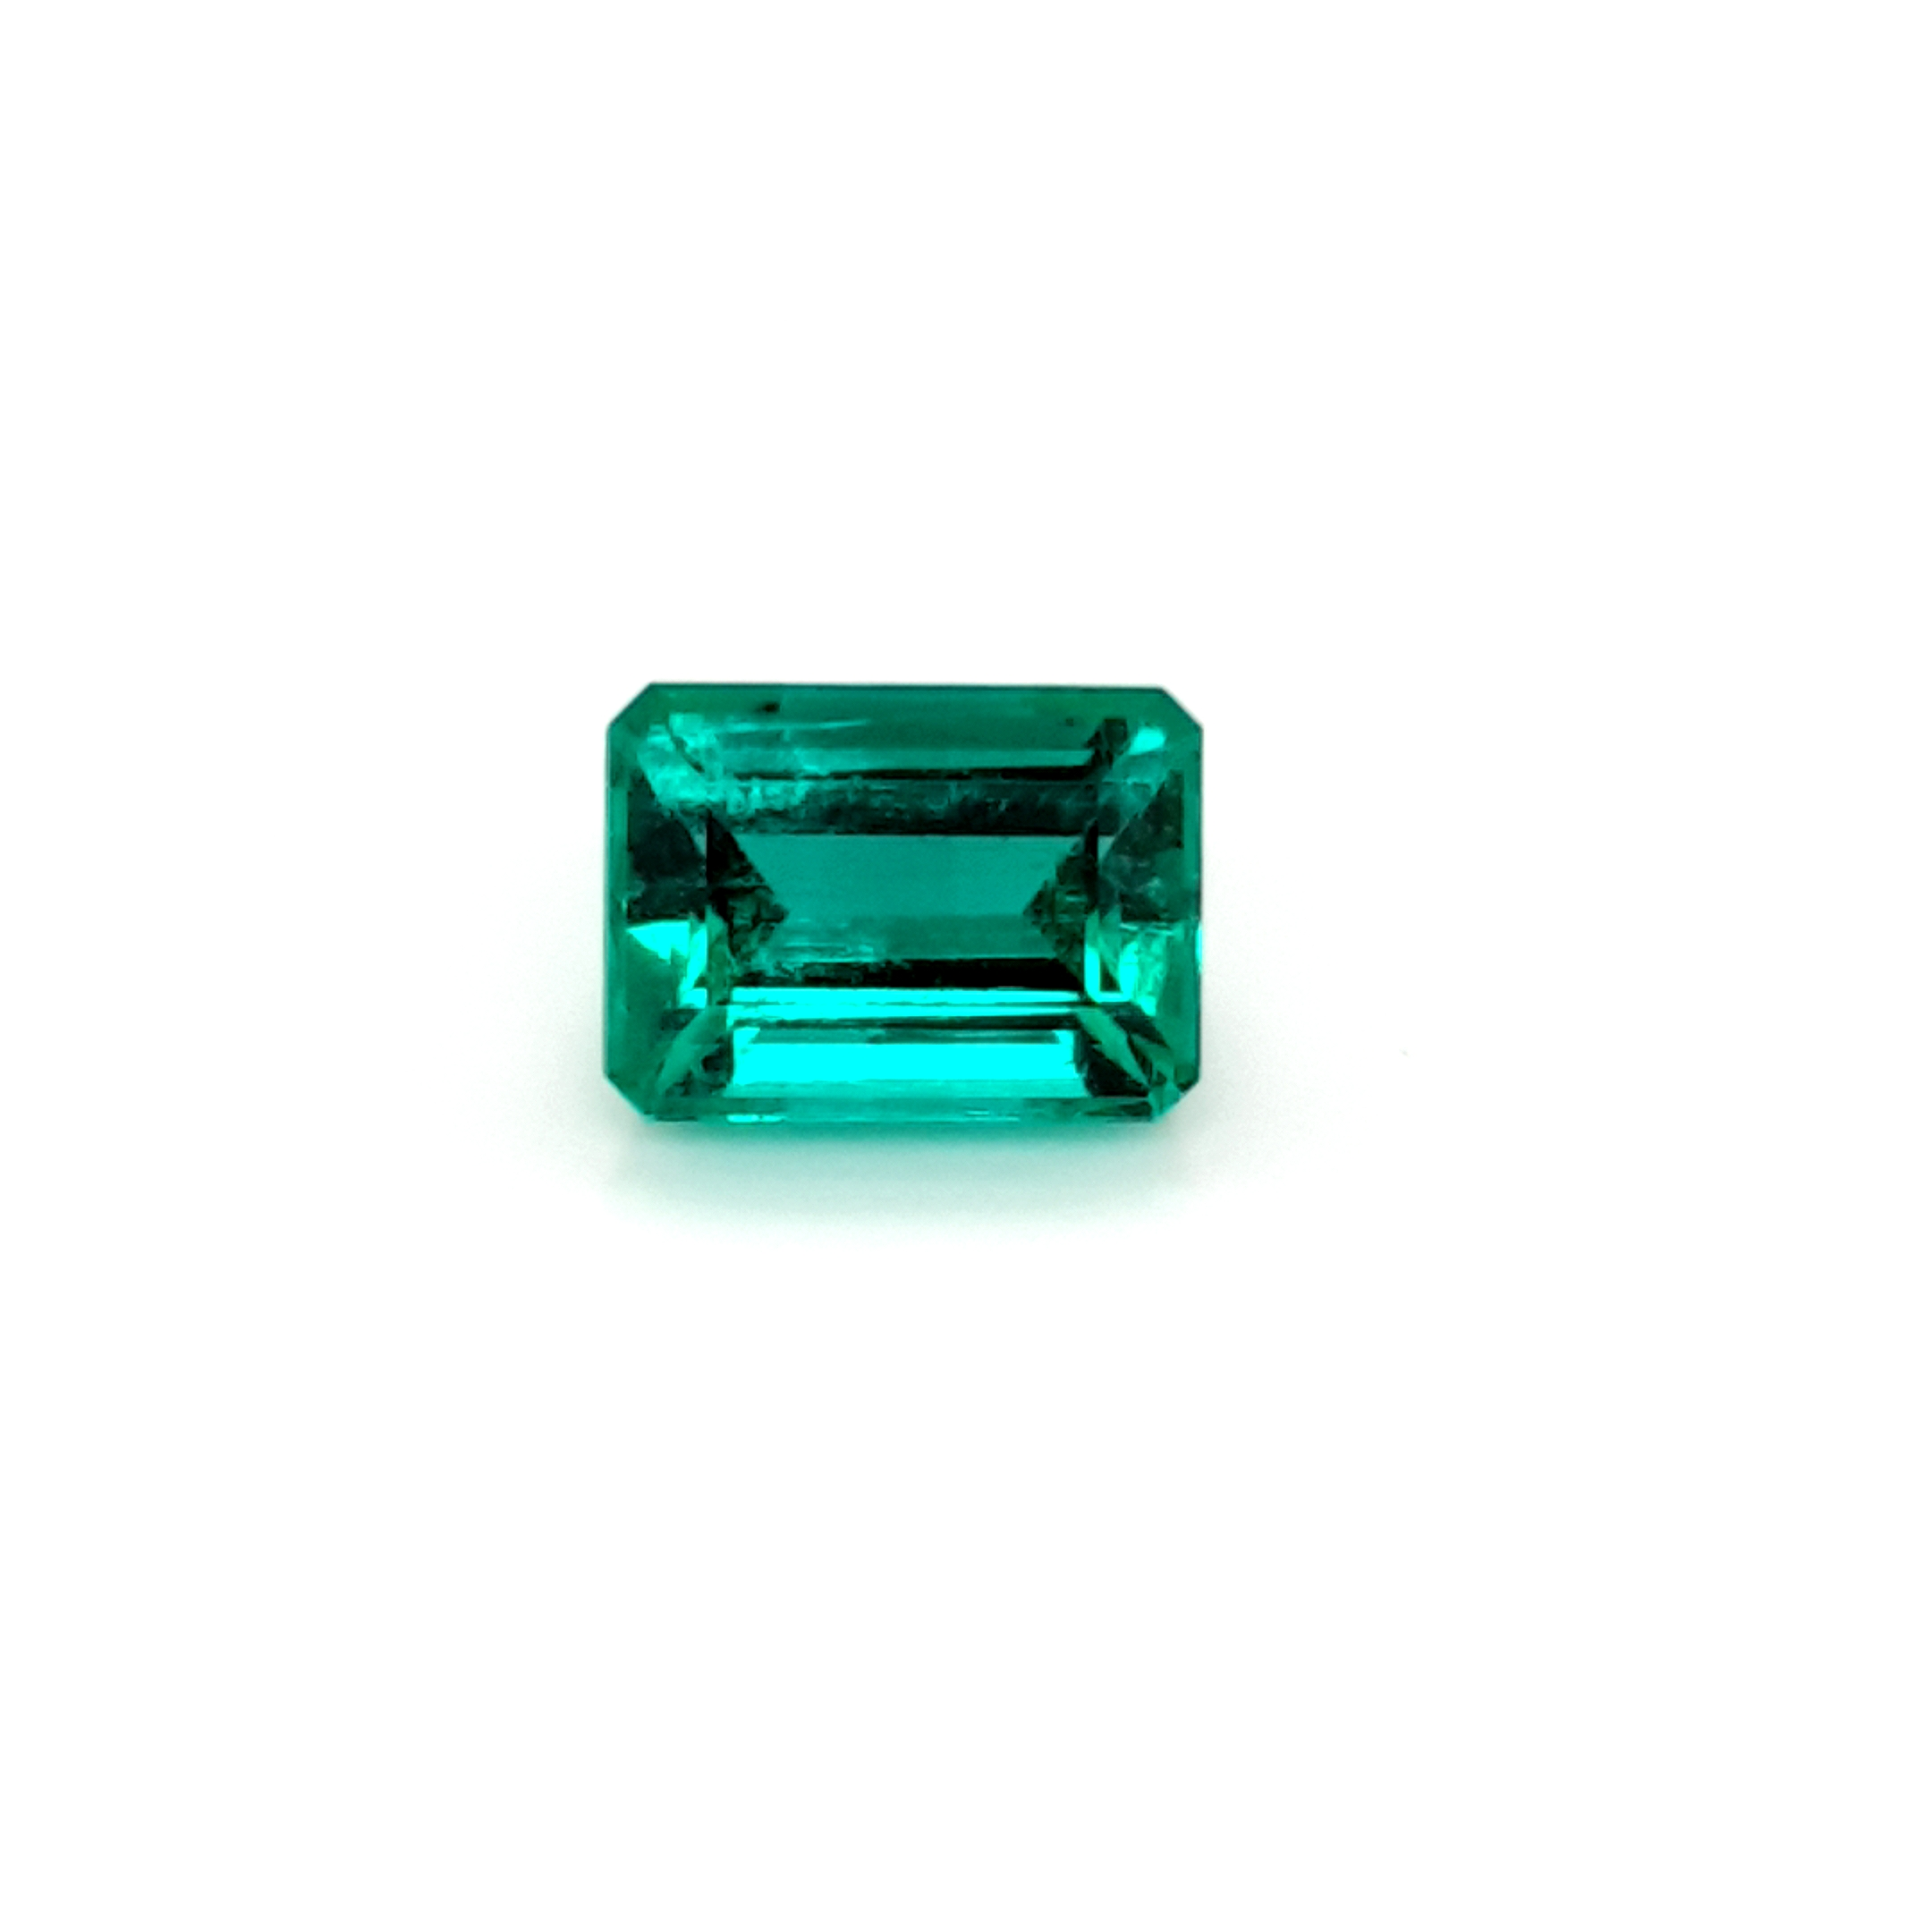 3,31ct. Emerald from Colombia cert. EML13D9 ClaudiaHamann__2021-03-26-11-30-41